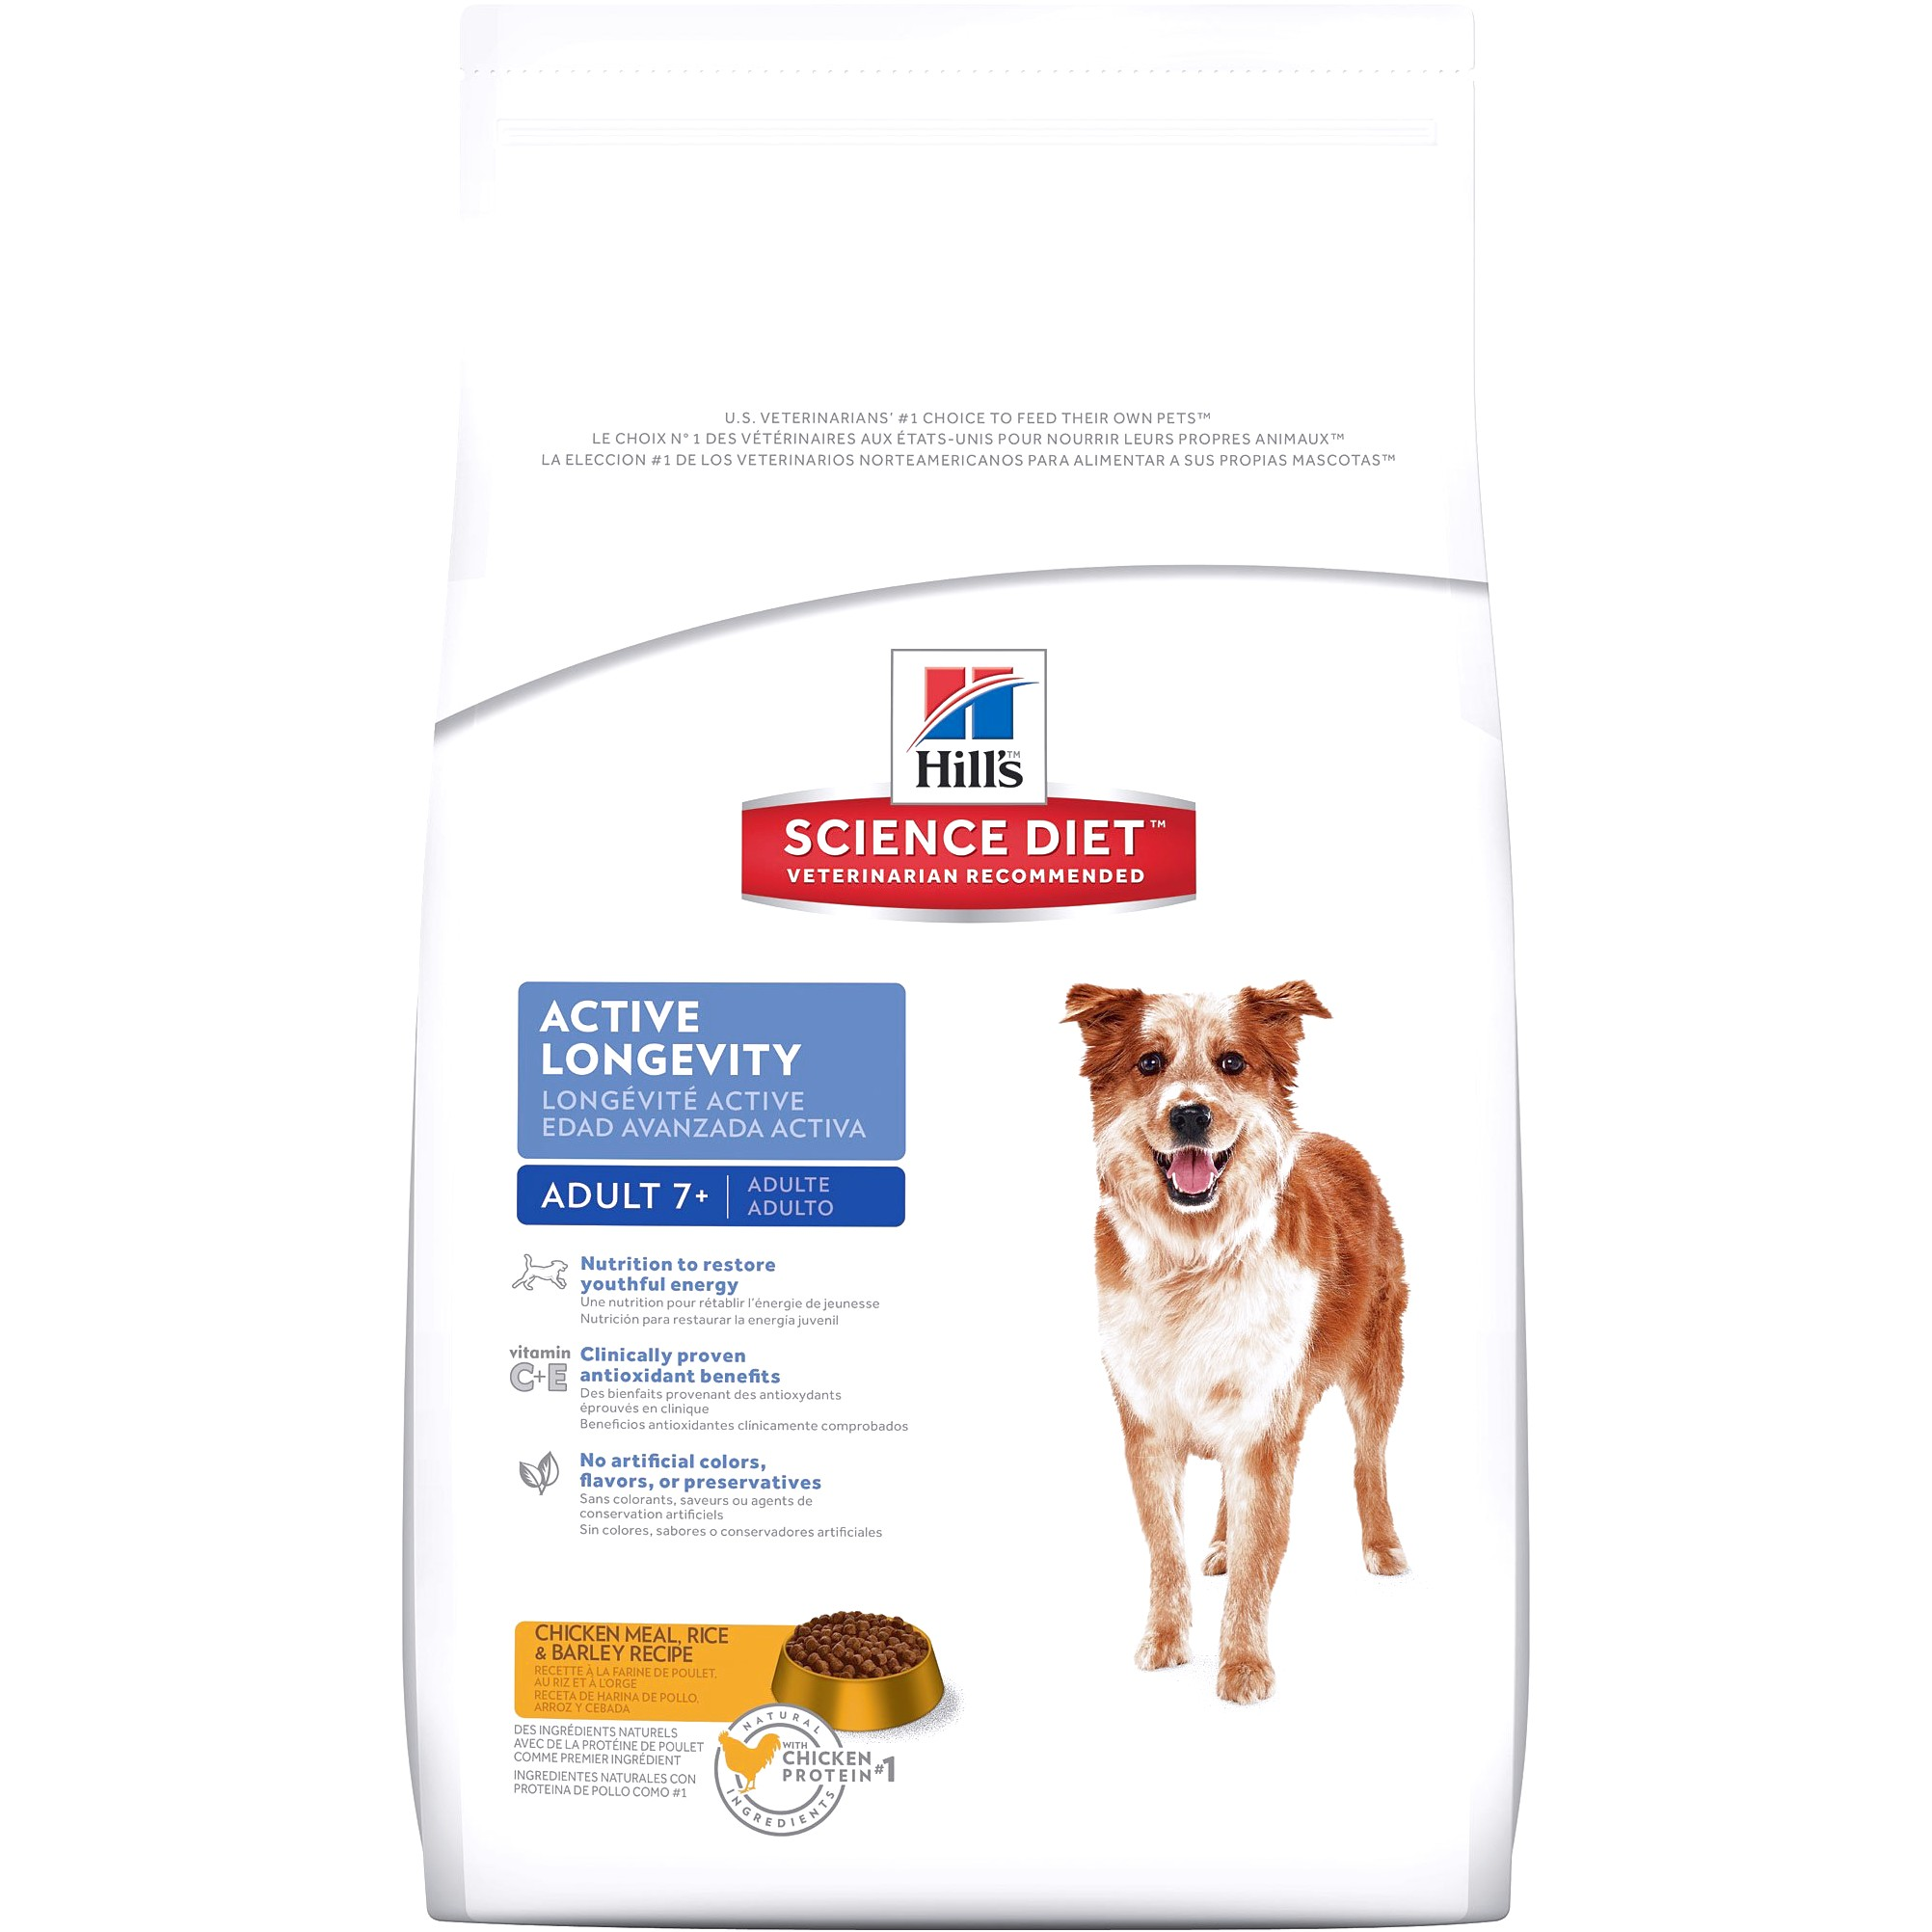 Science Diet Dog Food Ingredients